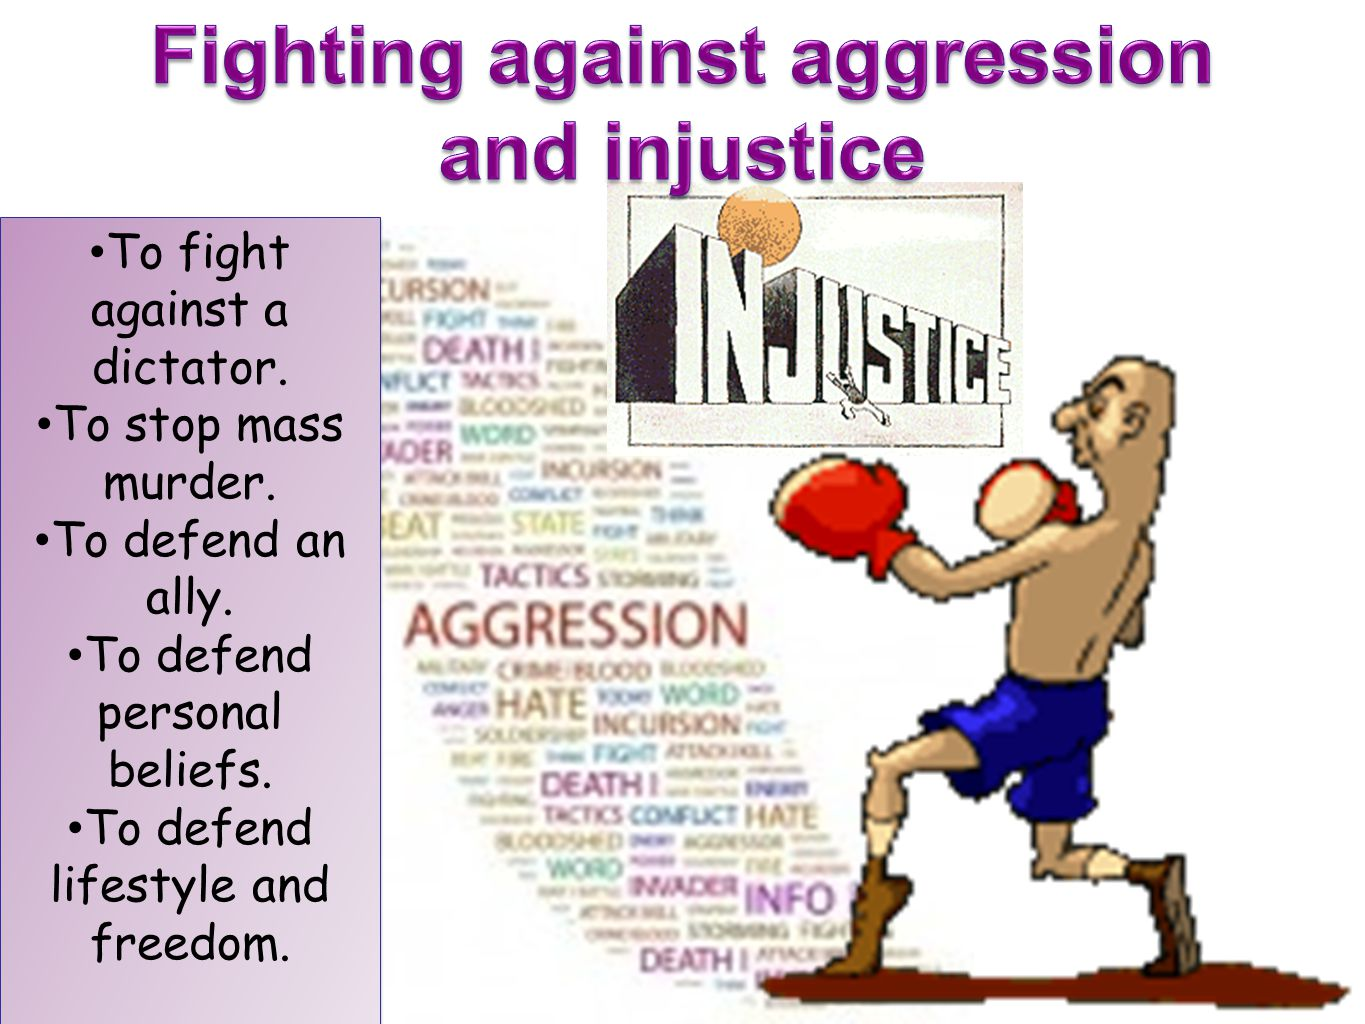 Fighting against aggression